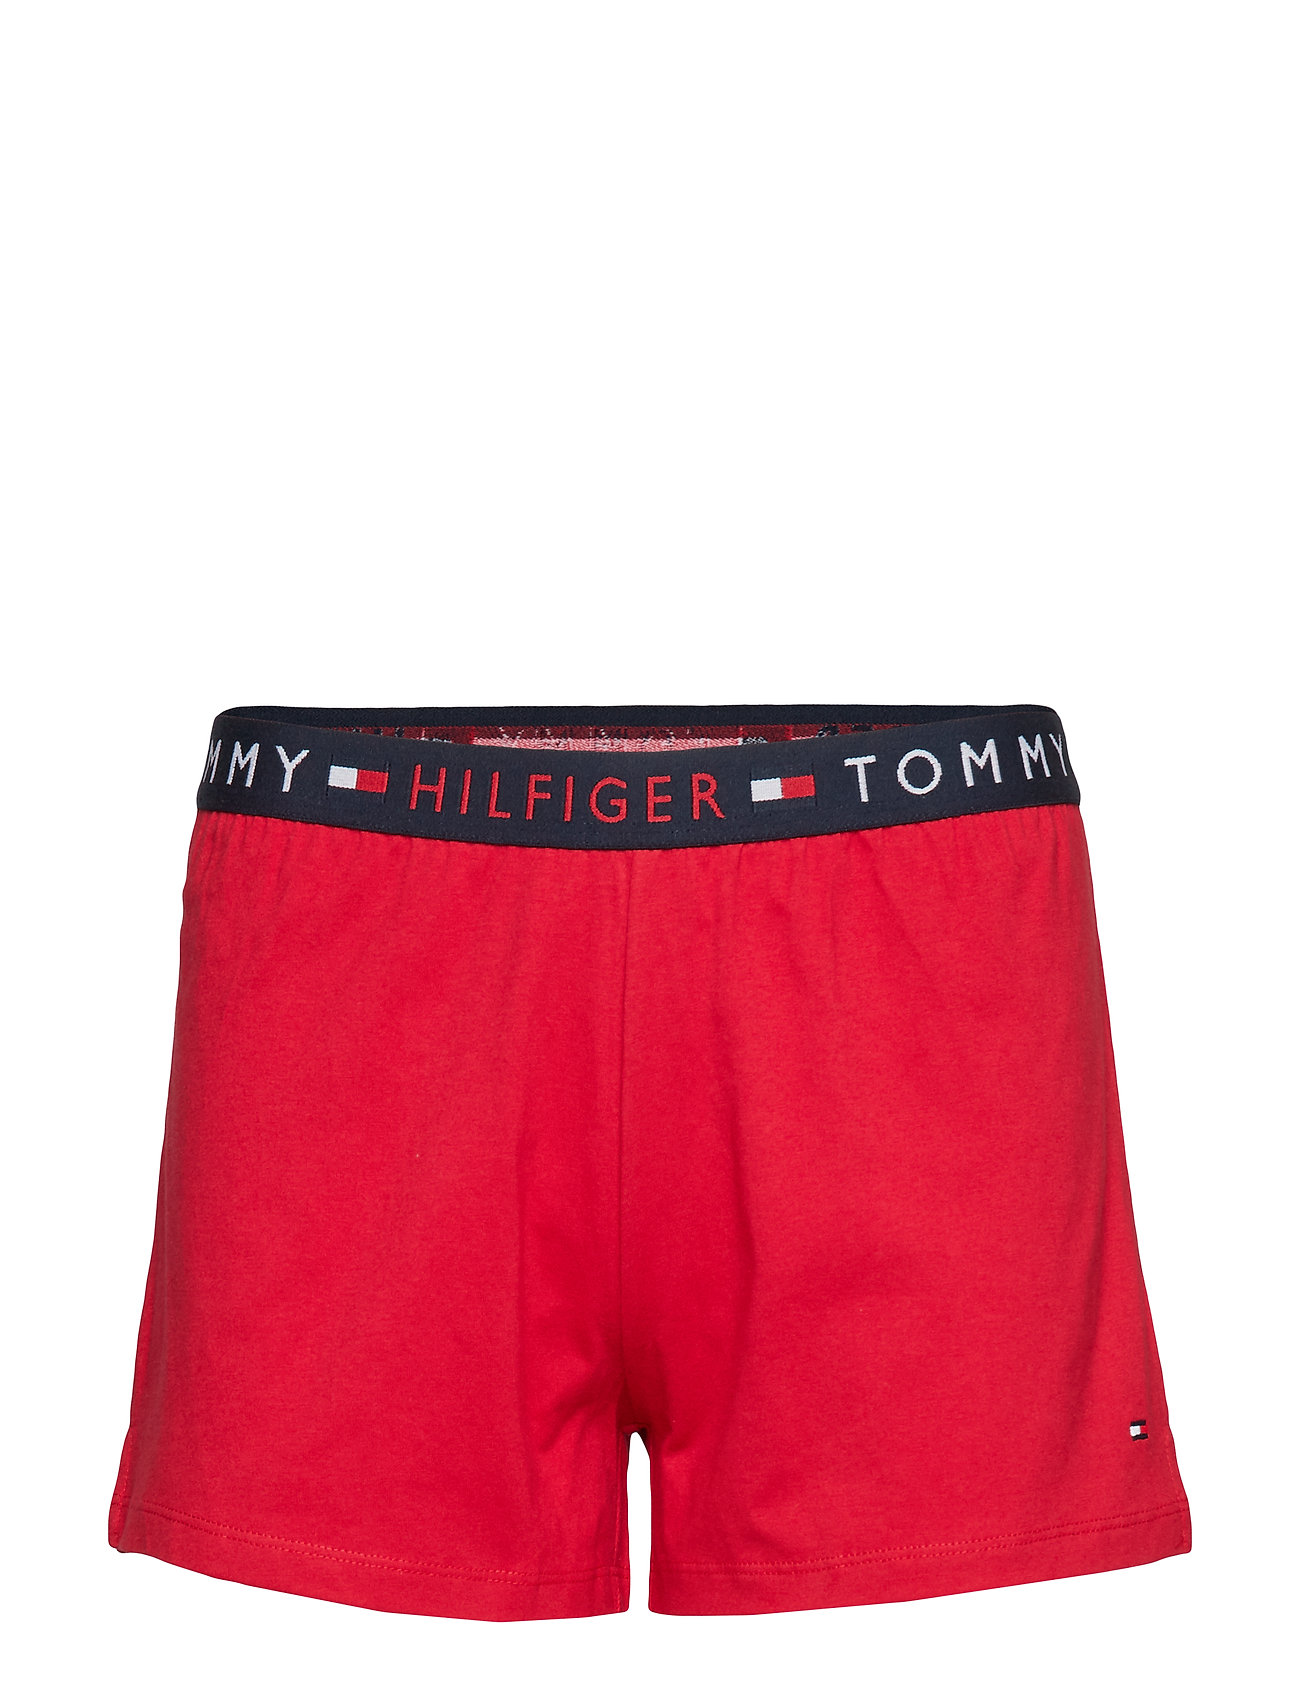 Tommy Hilfiger SHORT - TANGO RED